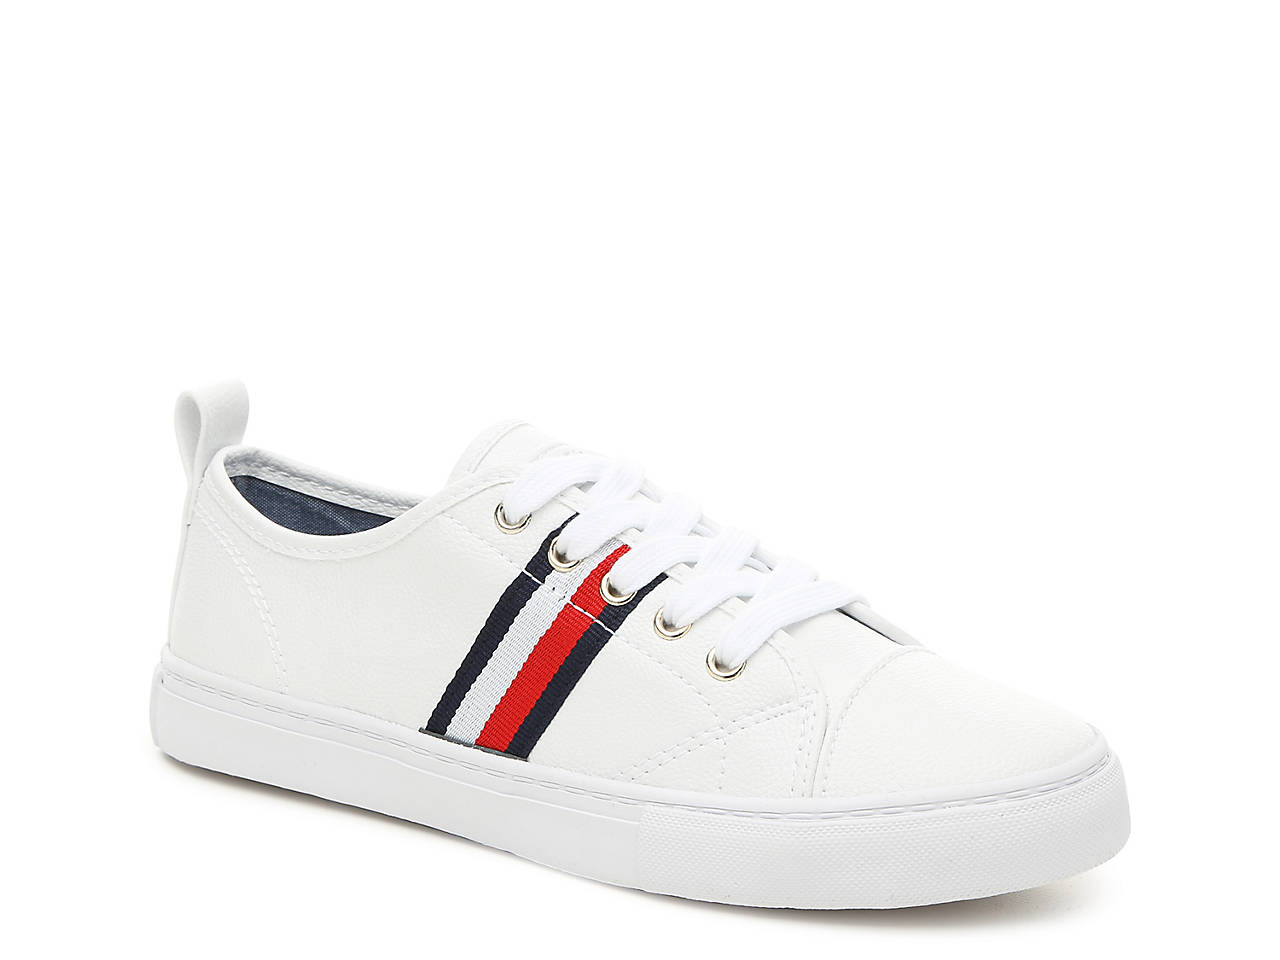 Tommy hilfiger lancer sneaker womens shoes dsw lancer sneaker publicscrutiny Choice Image